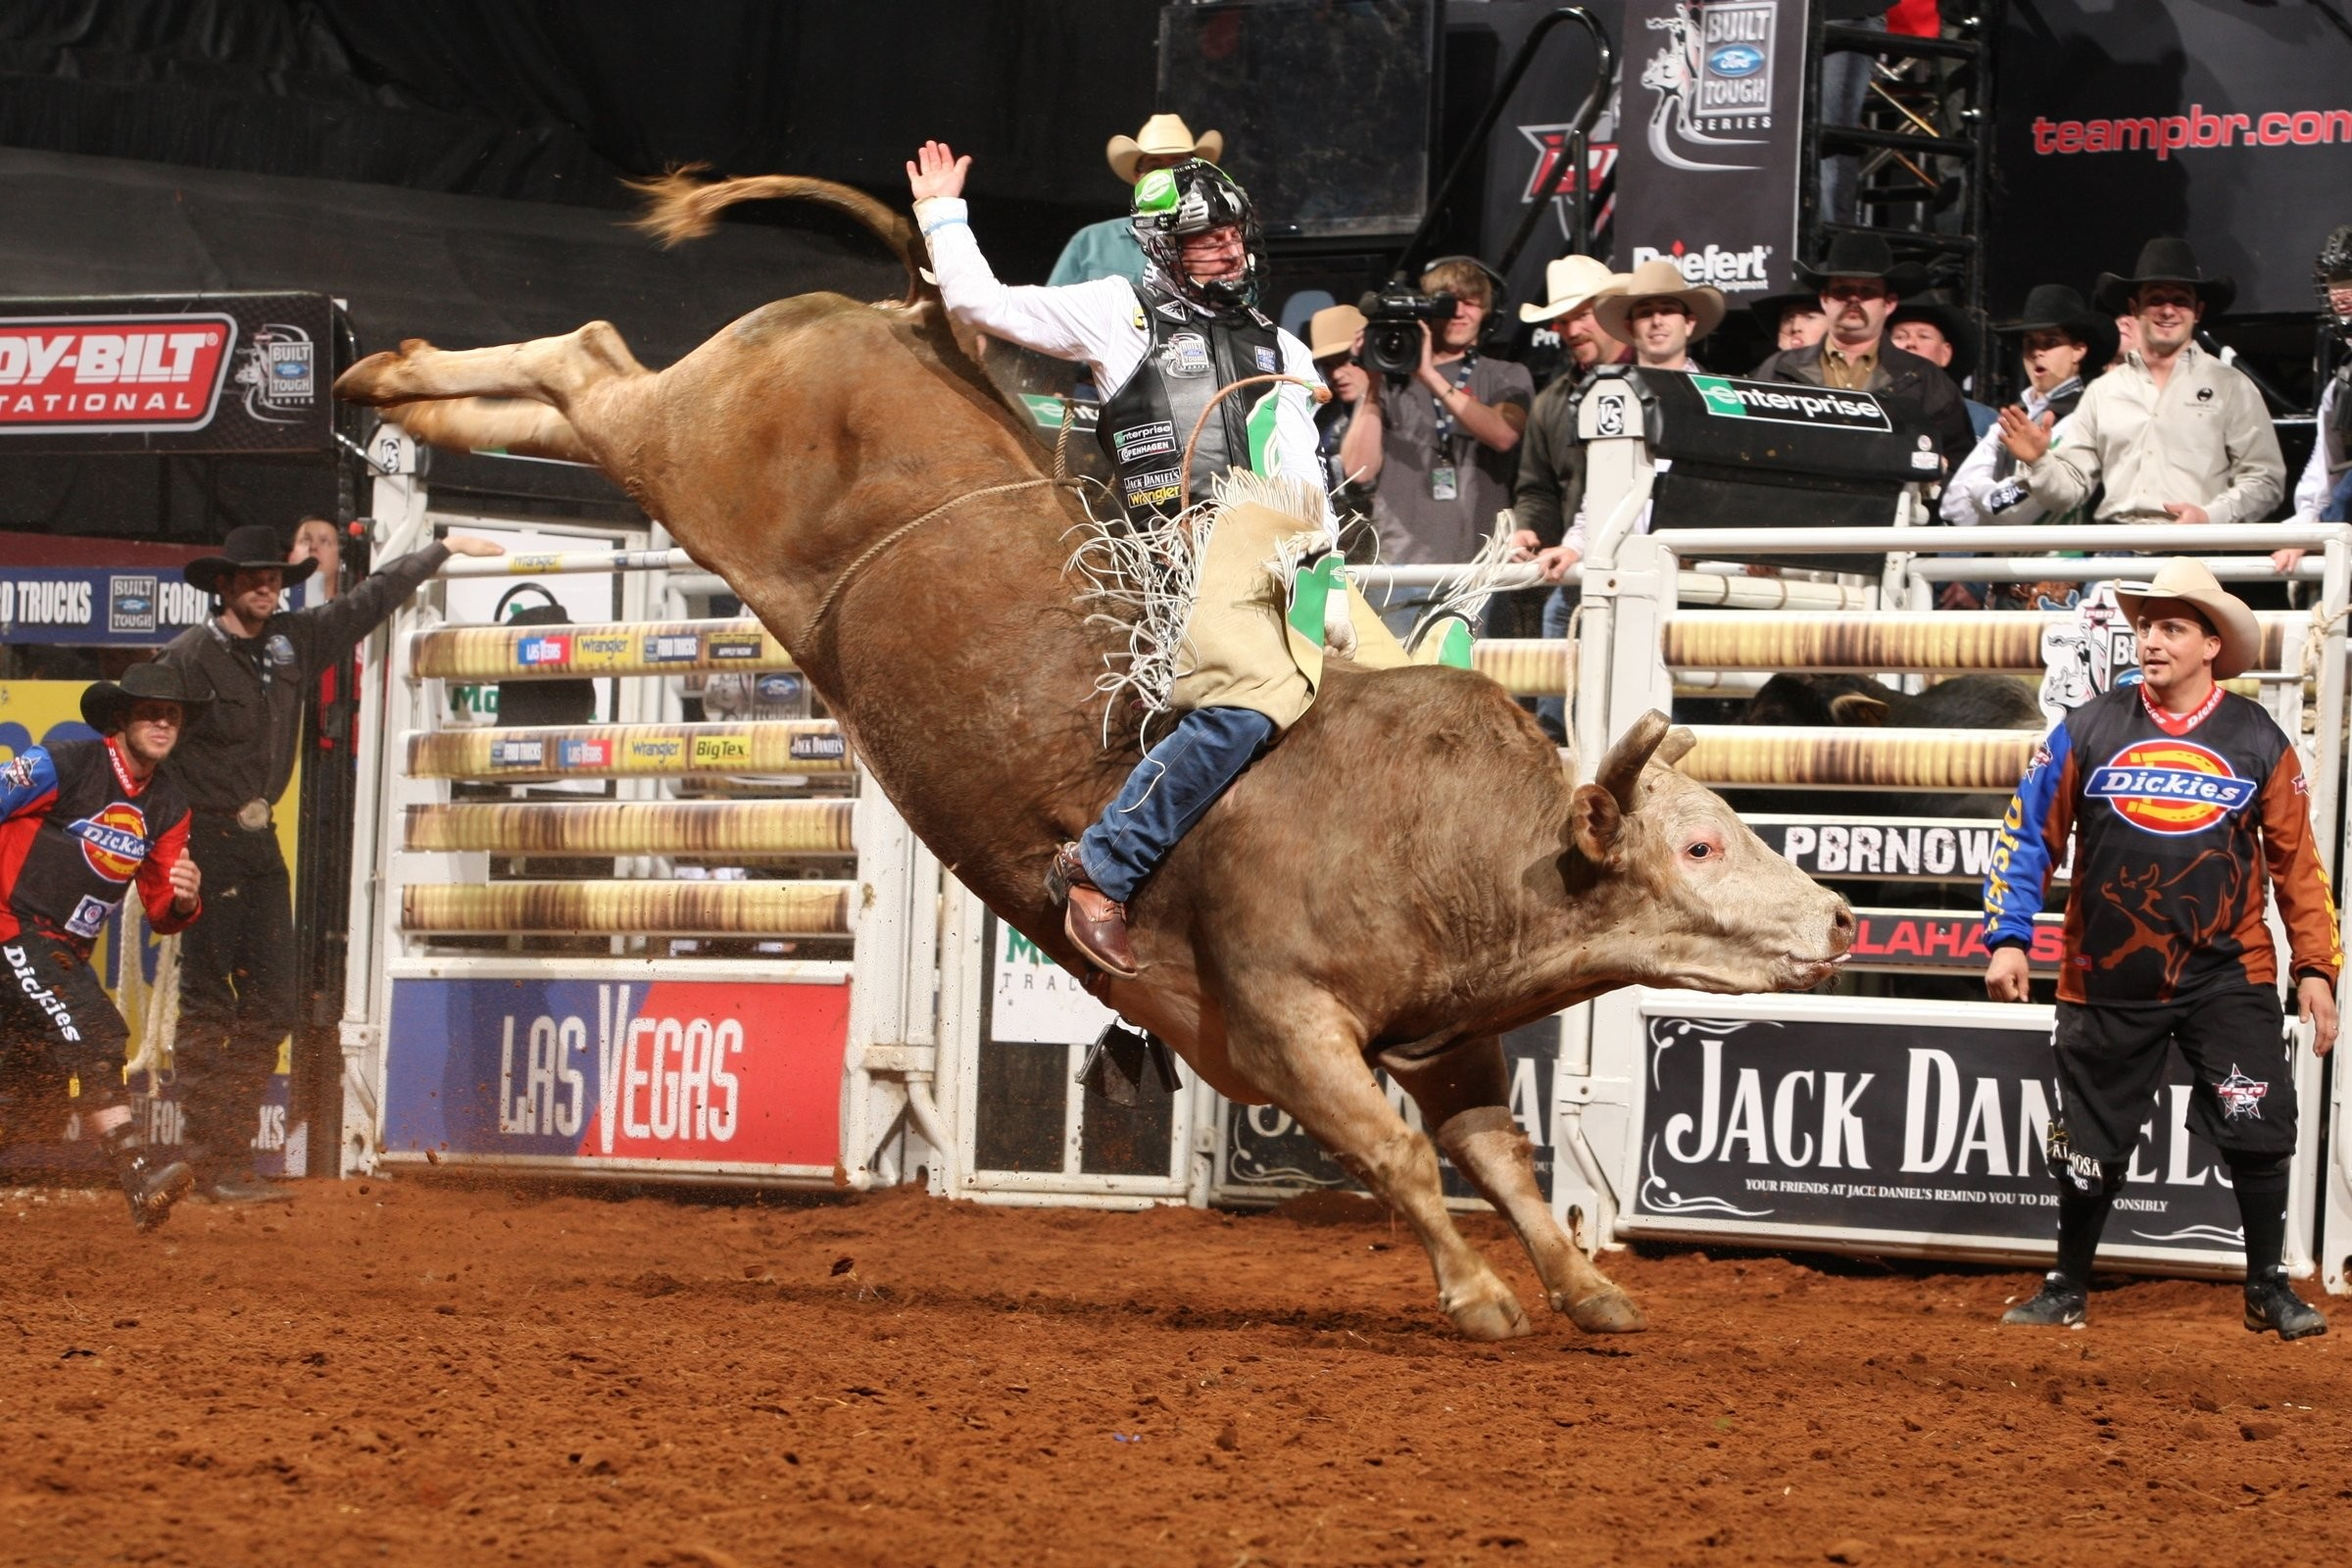 Res: 2400x1600, Backgrounds bull riding bullrider rodeo western.